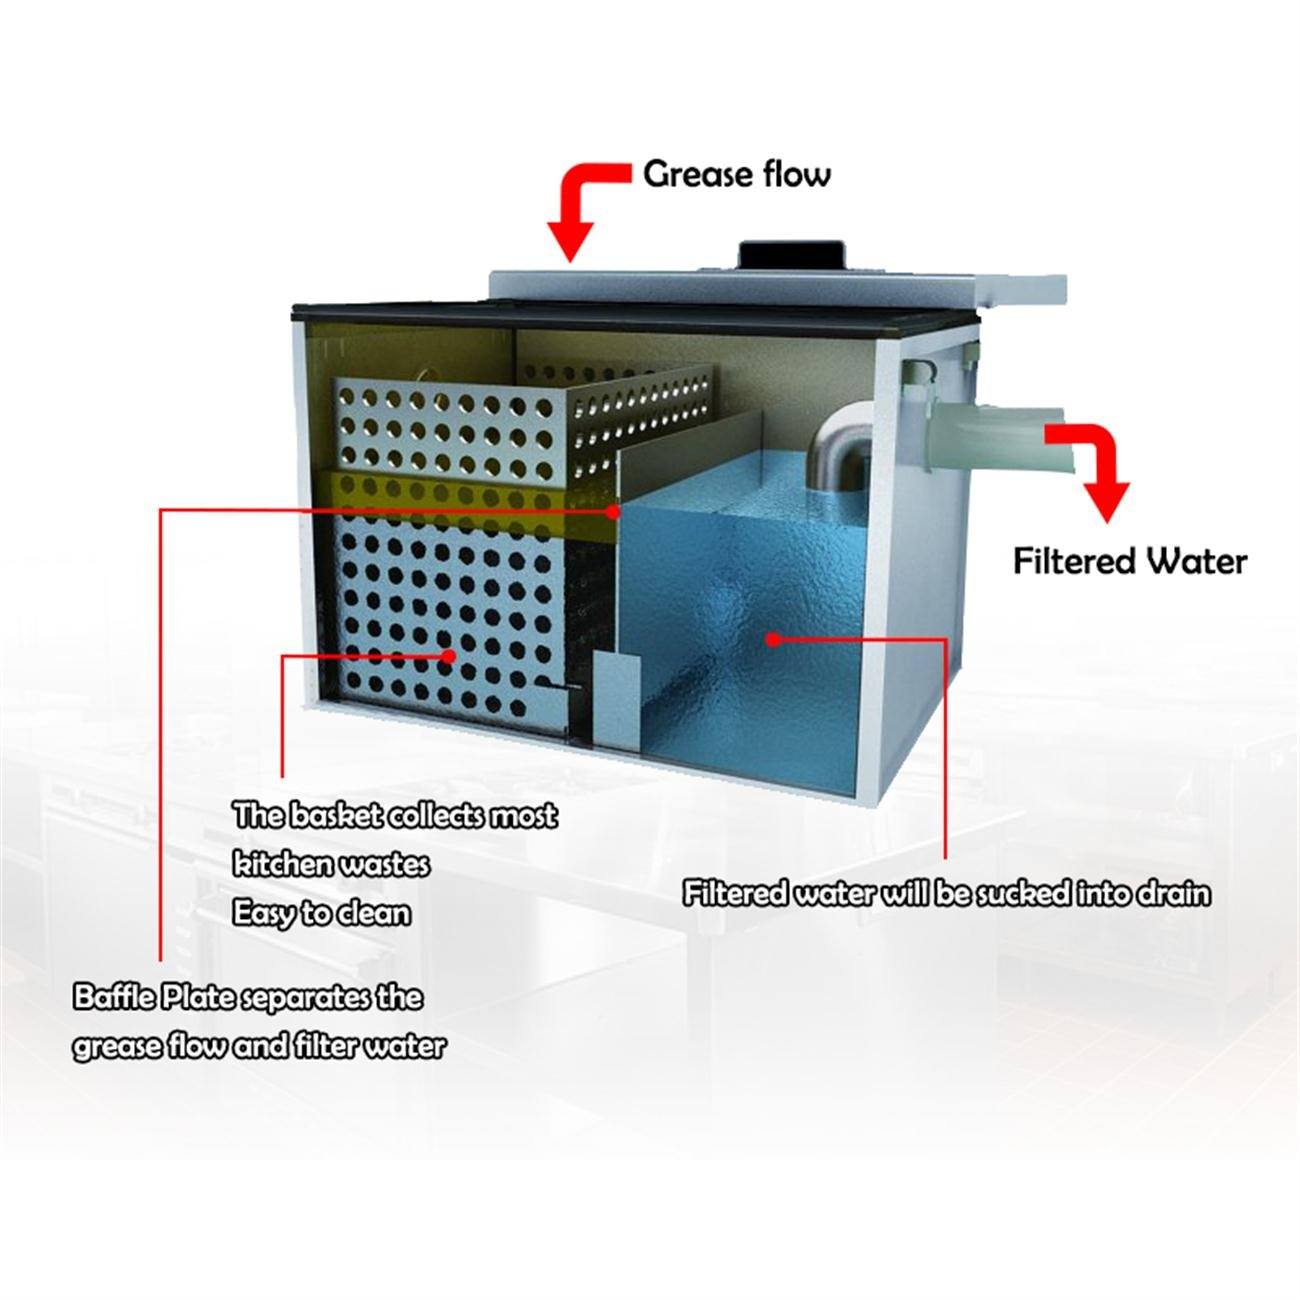 BEAMNOVA Commercial Grease Trap 8lbs 5GPM Gallons Per Minute Stainless Steel Interceptor for Restaurant Kitchen by BEAMNOVA (Image #6)